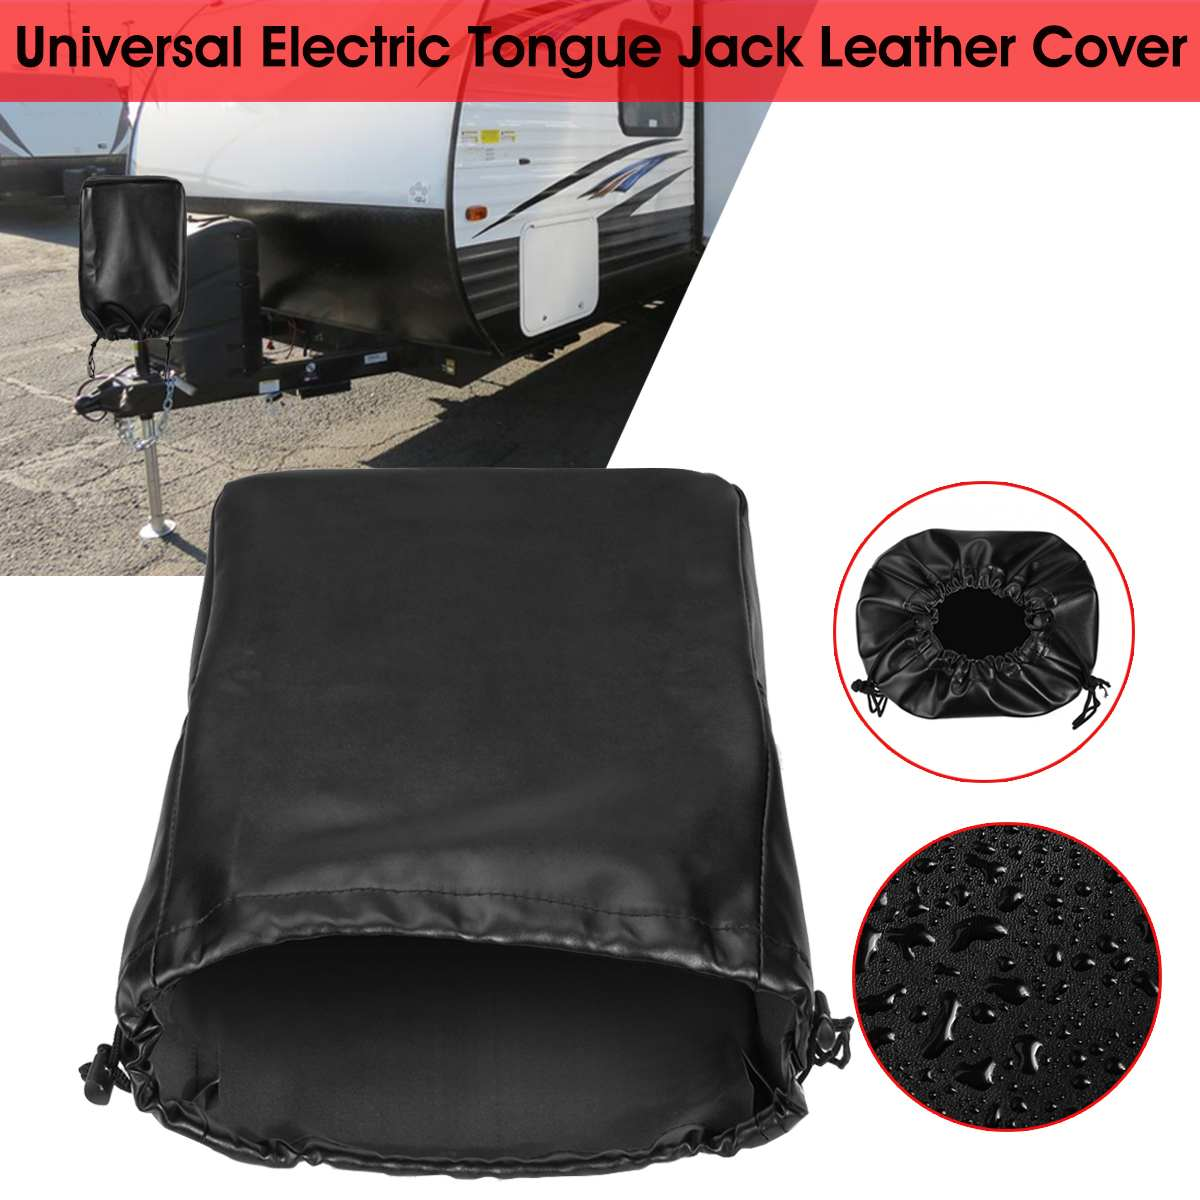 Universal RV Truck Electric Tongue Jack Cover Sunshade Protection Waterproof Dustproof